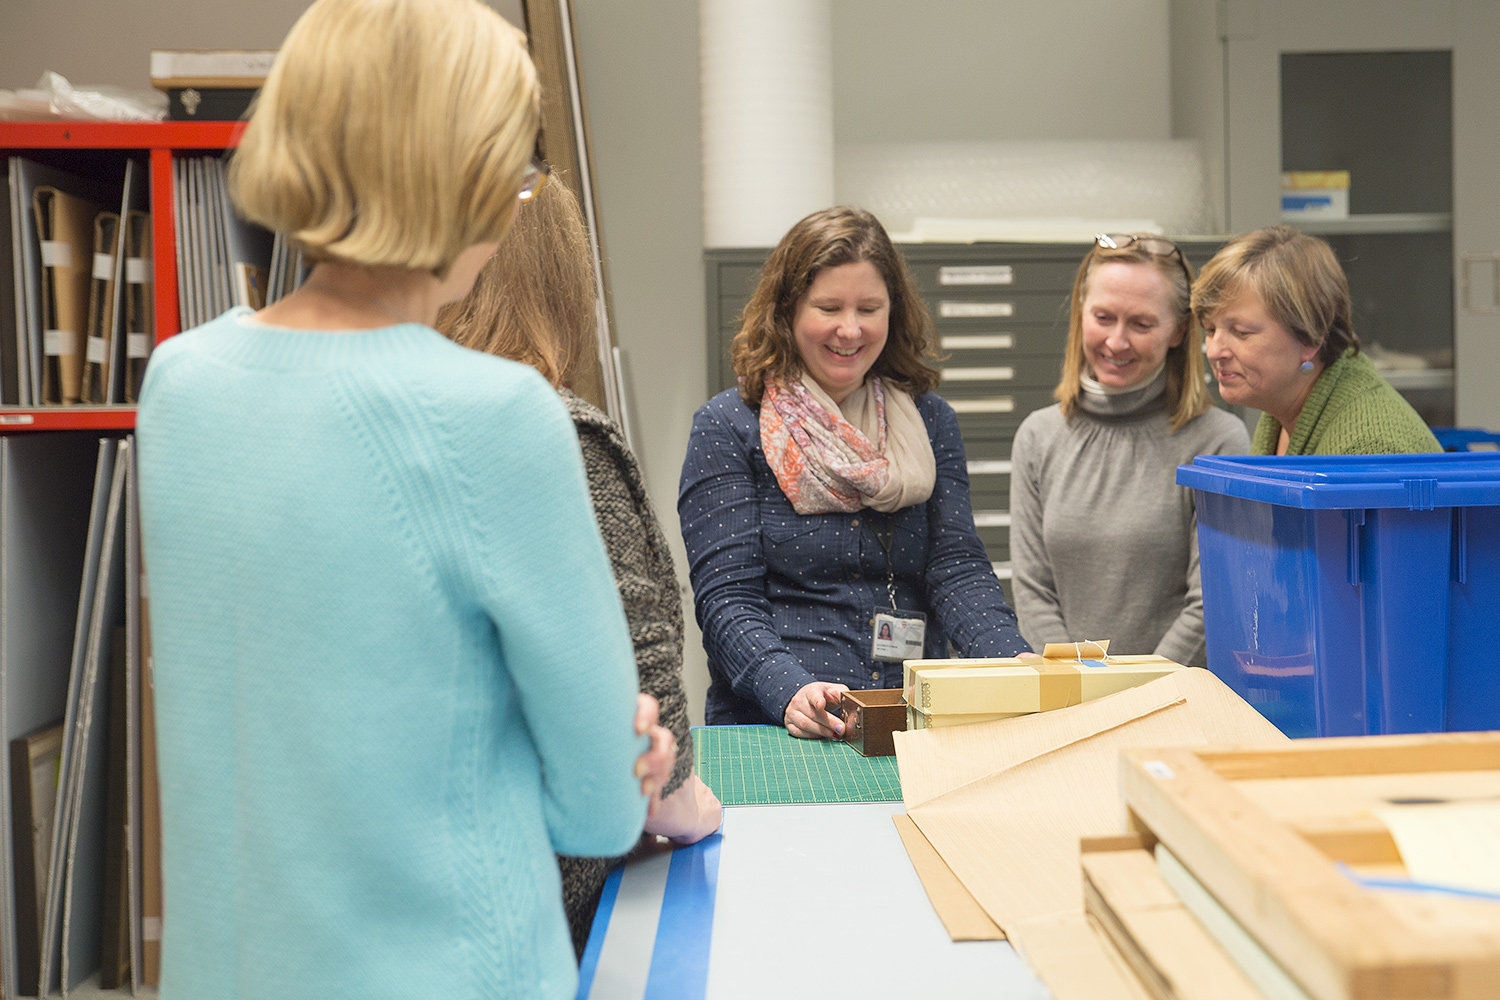 Kathryn Press, senior associate registrar for collections, center, shows an object to a group of students interested in studying new acquisitions.